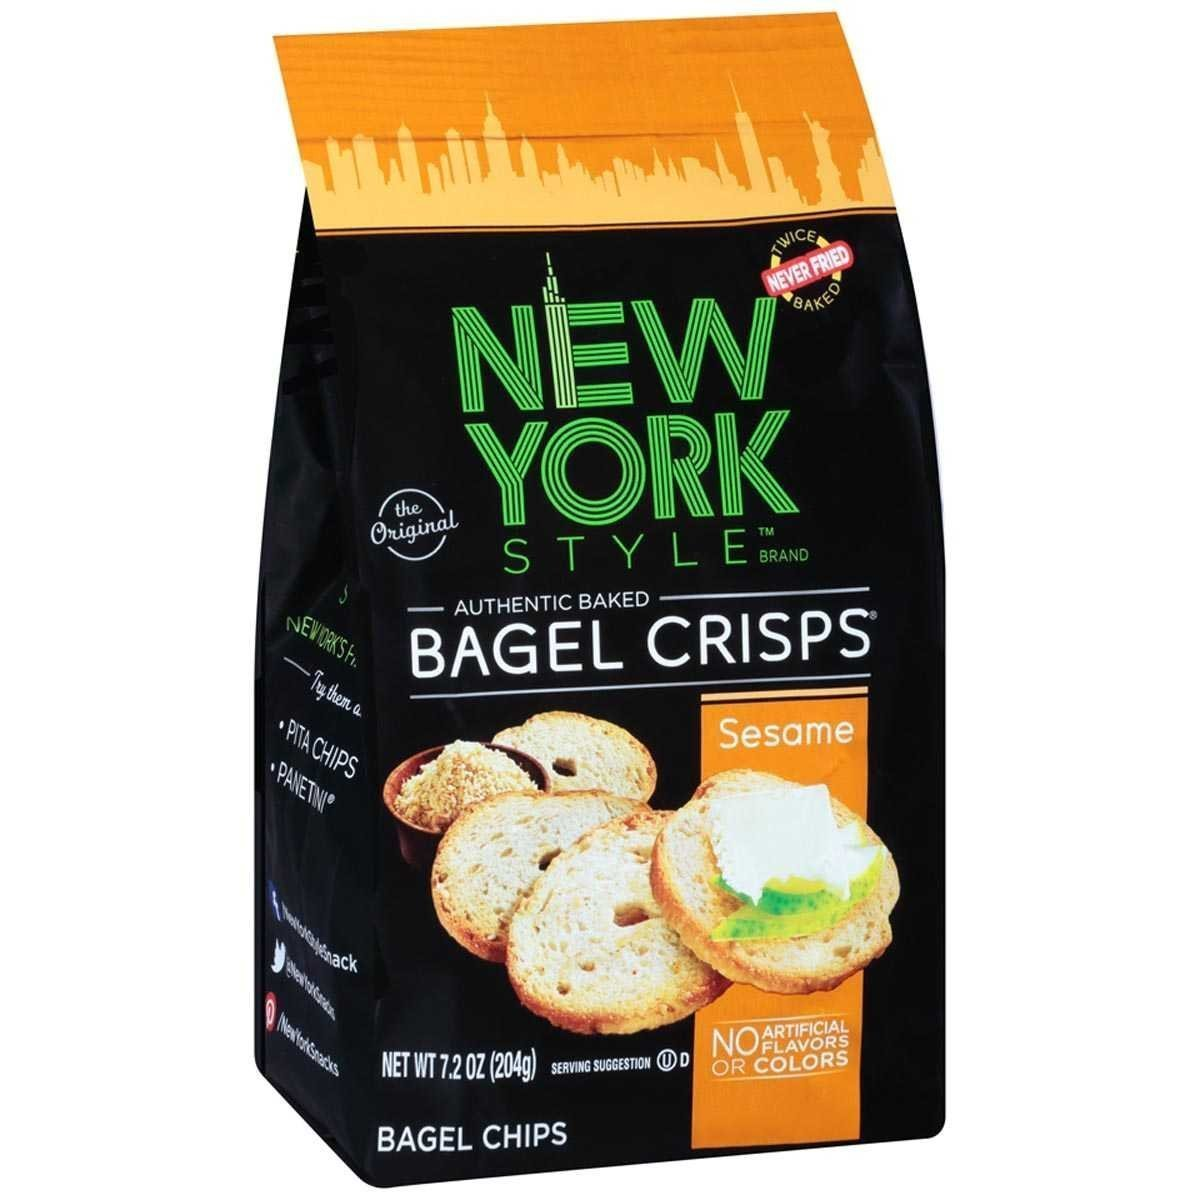 Ny Style Bagel Crisp Sesame (7.2 Oz) (1 Pack) by New York Style